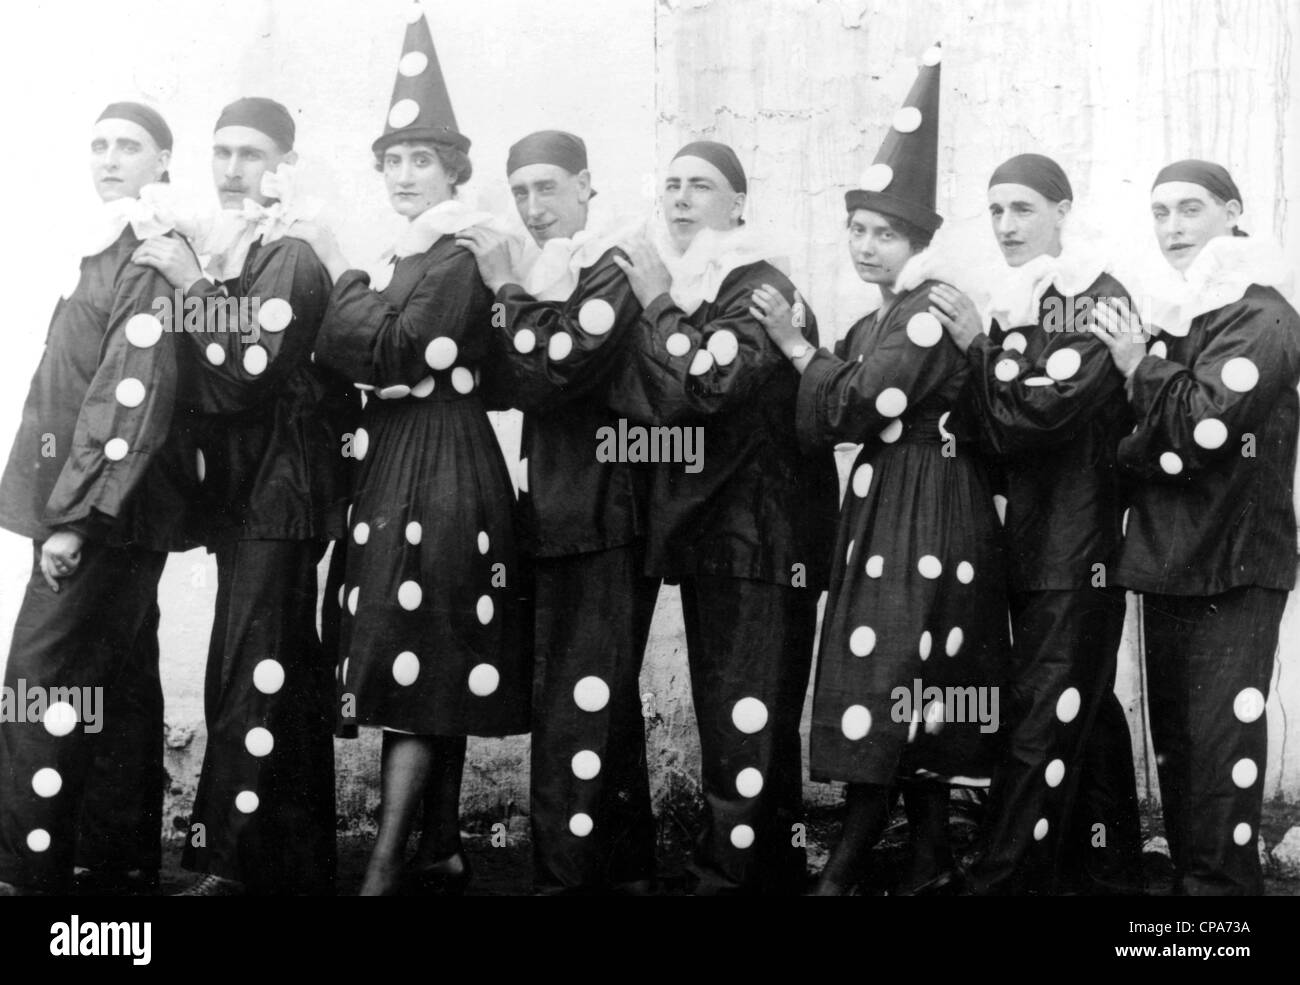 PIERROT clown group at a seaside show about 1935 - Stock Image